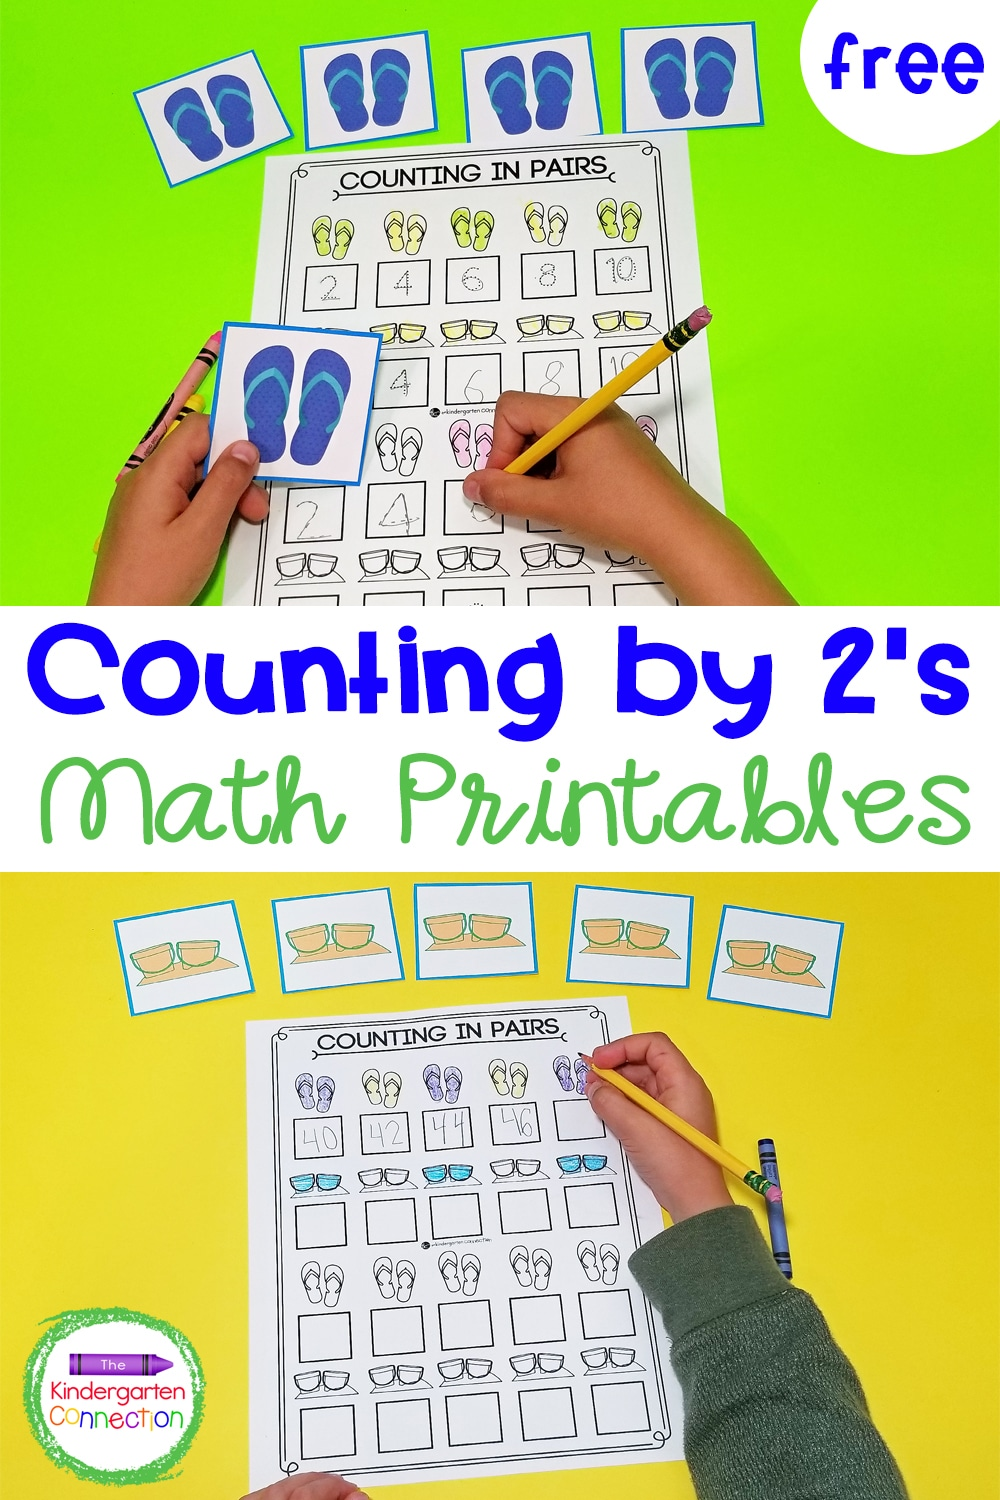 Grab this free, printable Summer Counting by 2's Activity for your Kindergarten math centers or send home for practice over summer break!